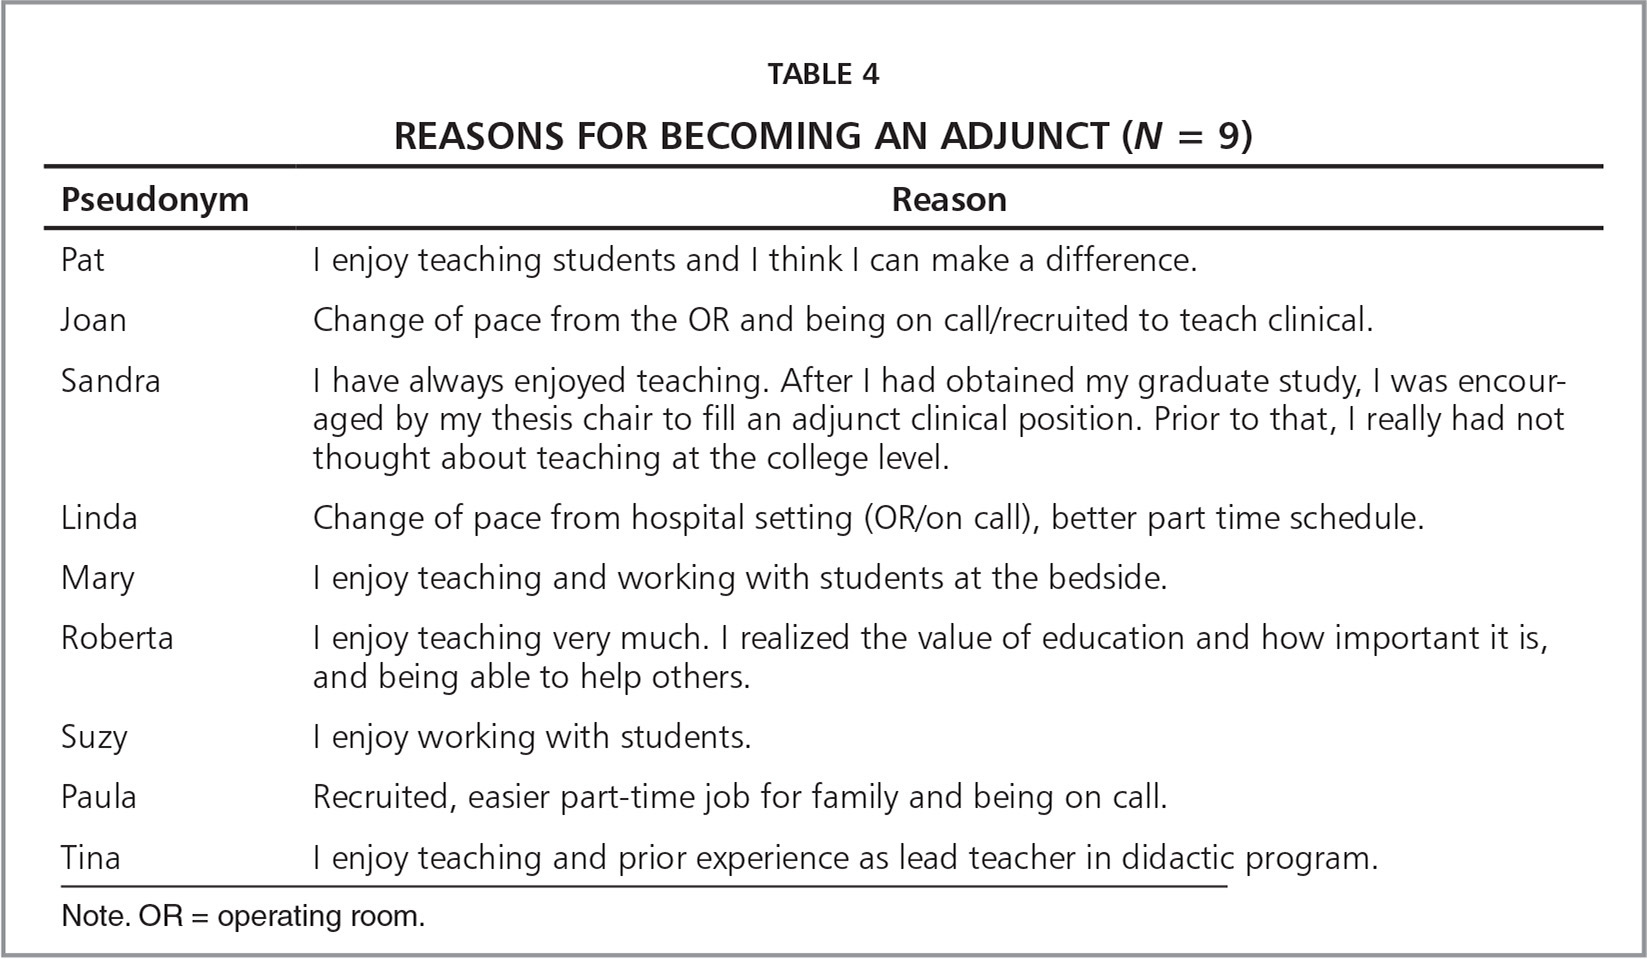 Reasons for Becoming an Adjunct (N = 9)